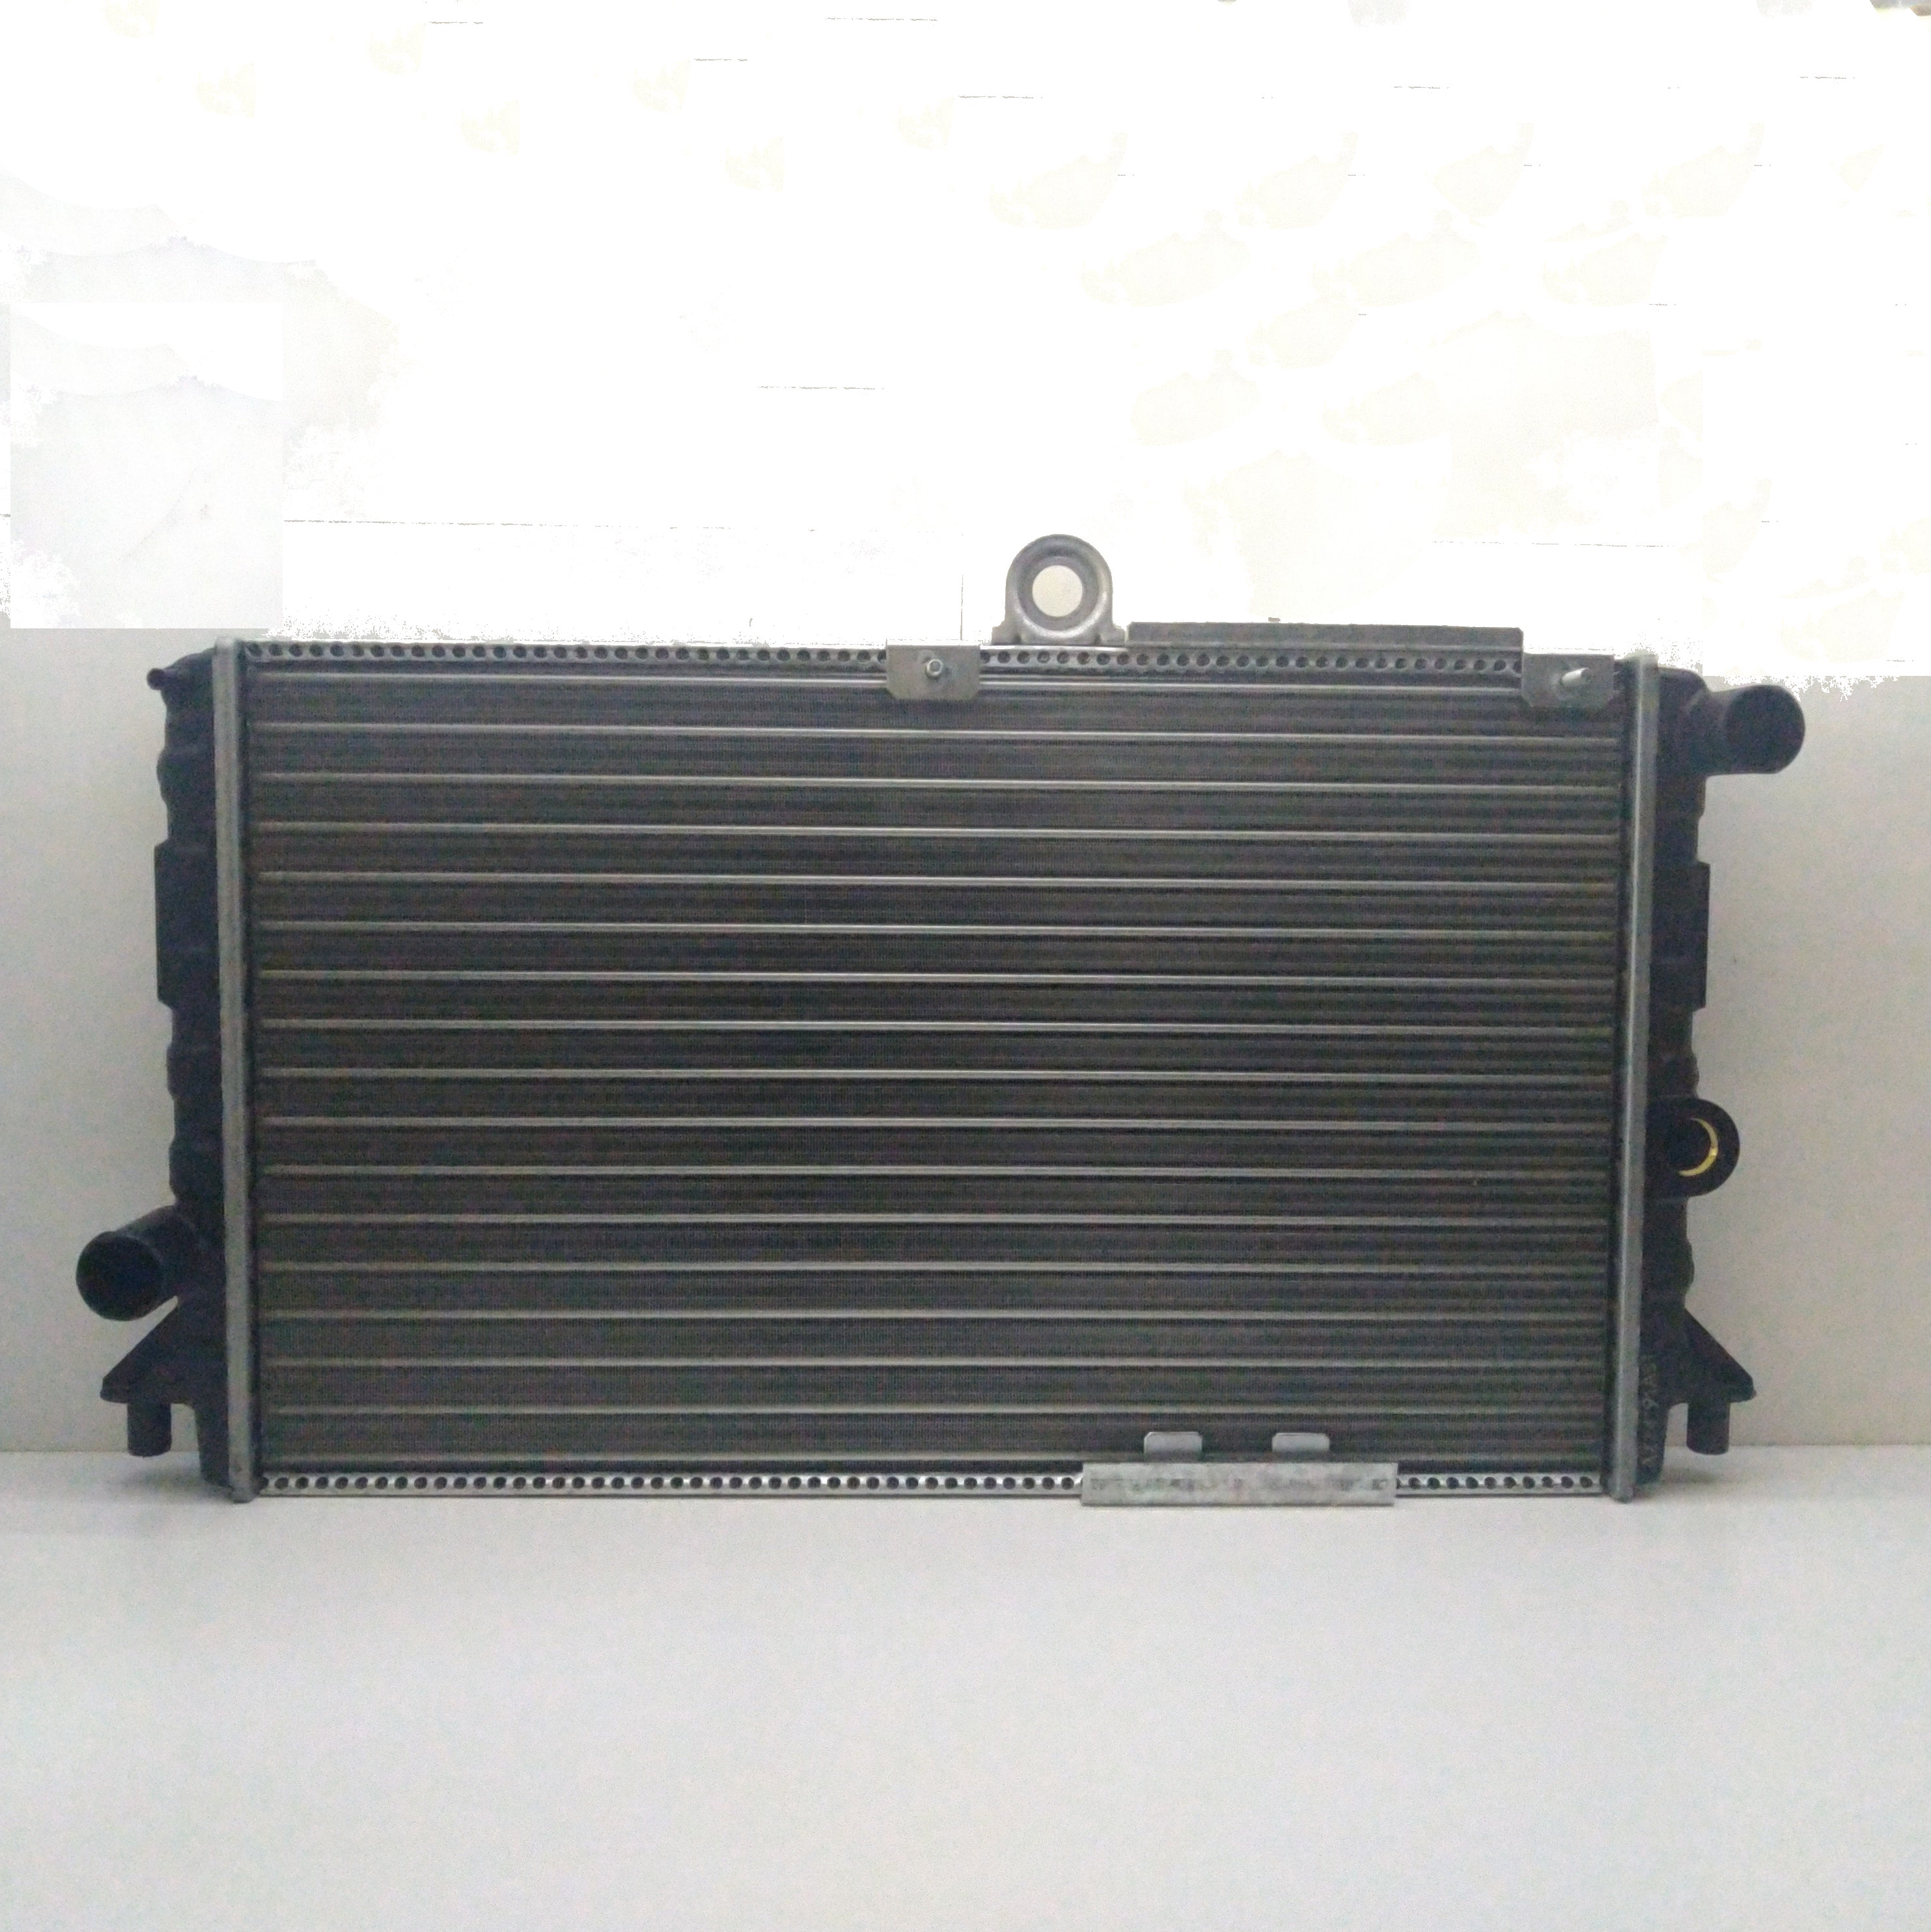 COOLING RADIATOR ALFA ROMEO 33 VALEO ENGINE FOR 60538379